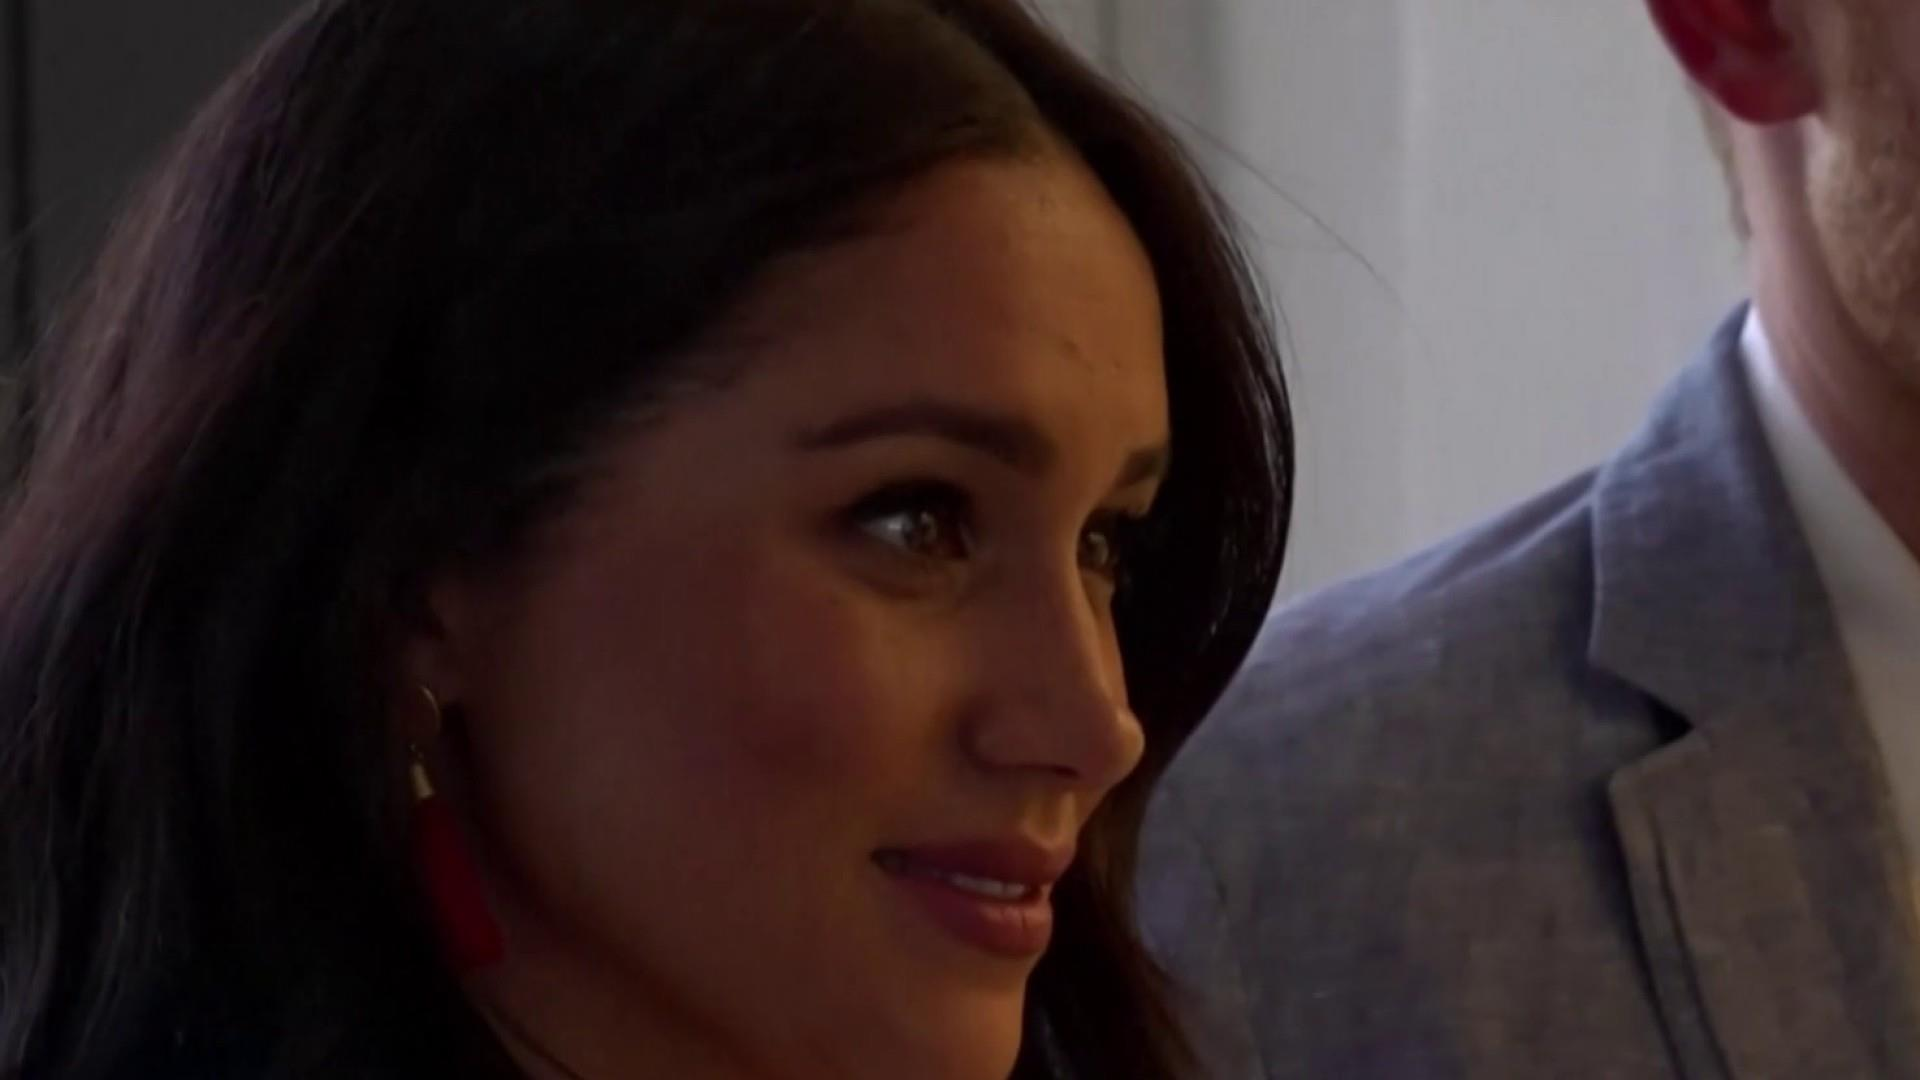 Meghan Markle speaks out about media attention in new documentary